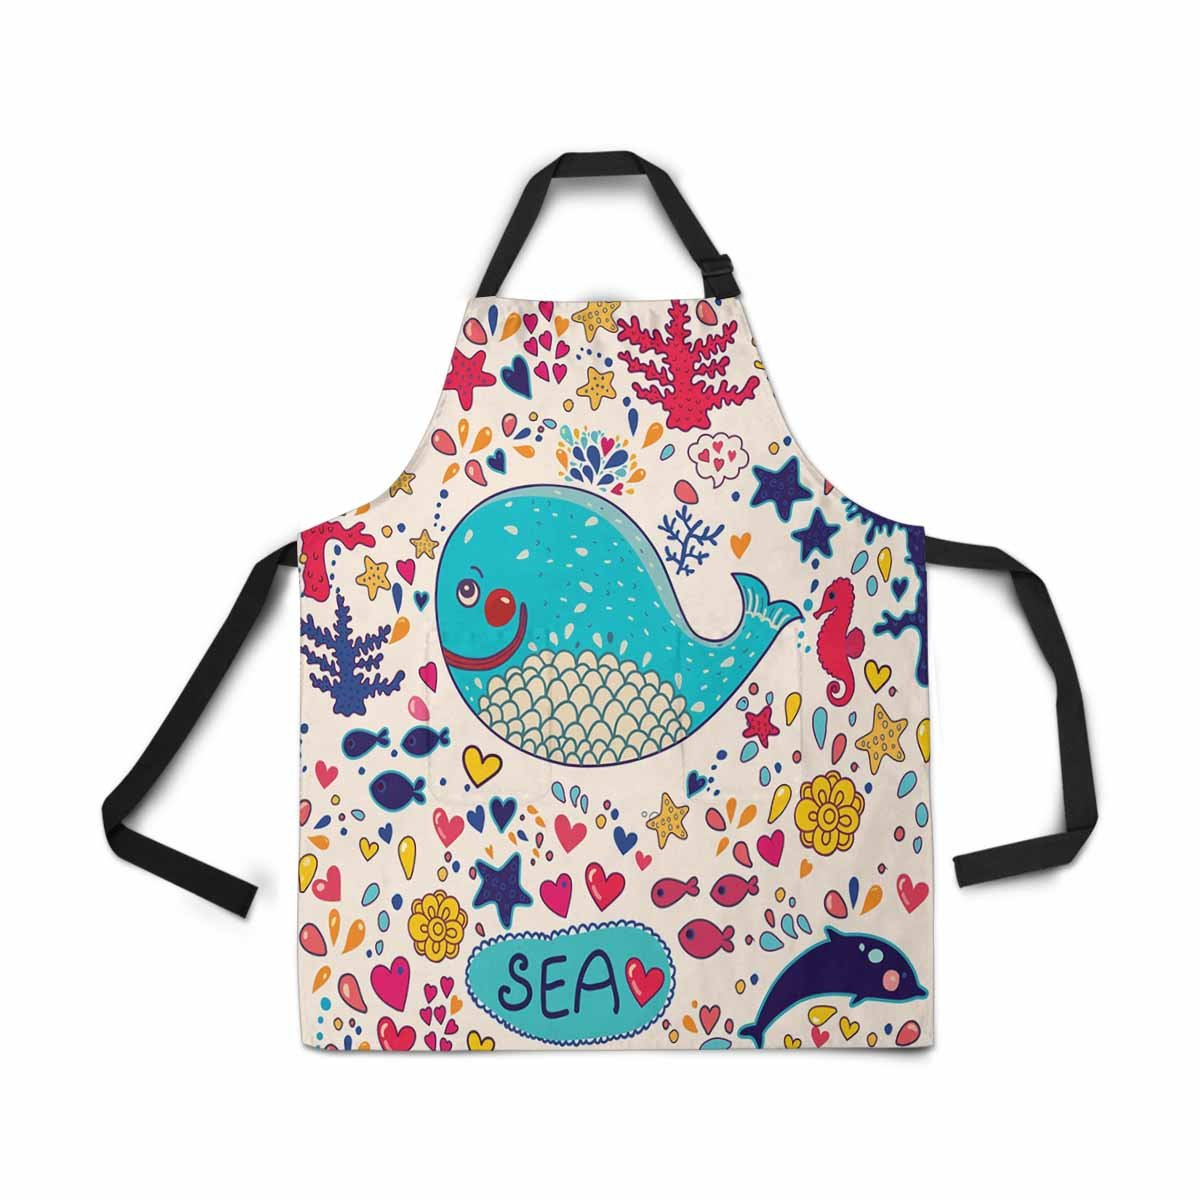 InterestPrint Adjustable Bib Apron for Women Men Girls Chef with Pockets, Cute Elephant Flower Novelty Kitchen Apron for Cooking Baking Gardening Pet Grooming Cleaning DG52877D